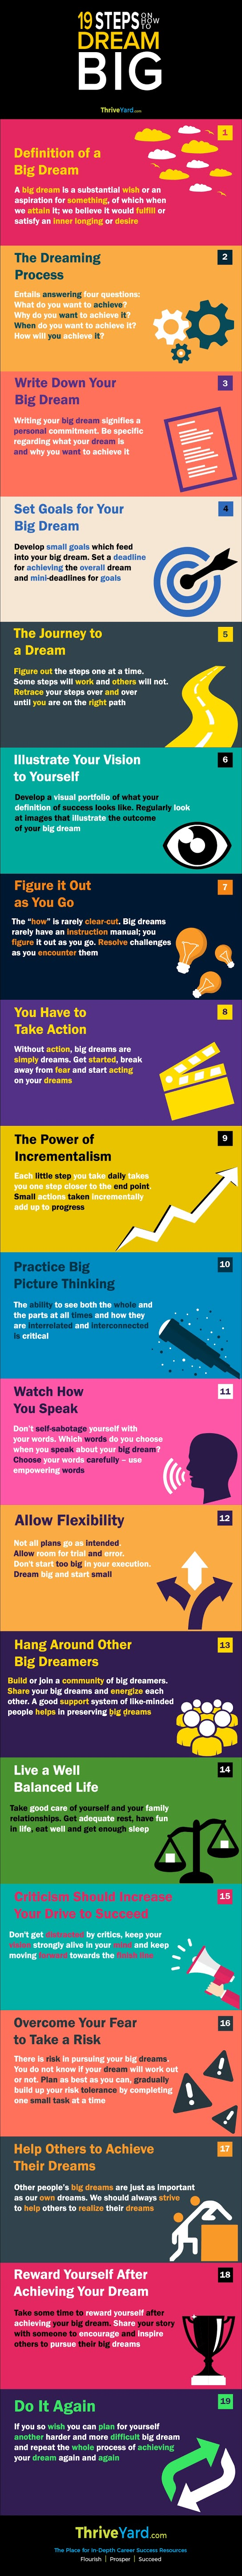 19 Steps On How To Dream Big #infographic